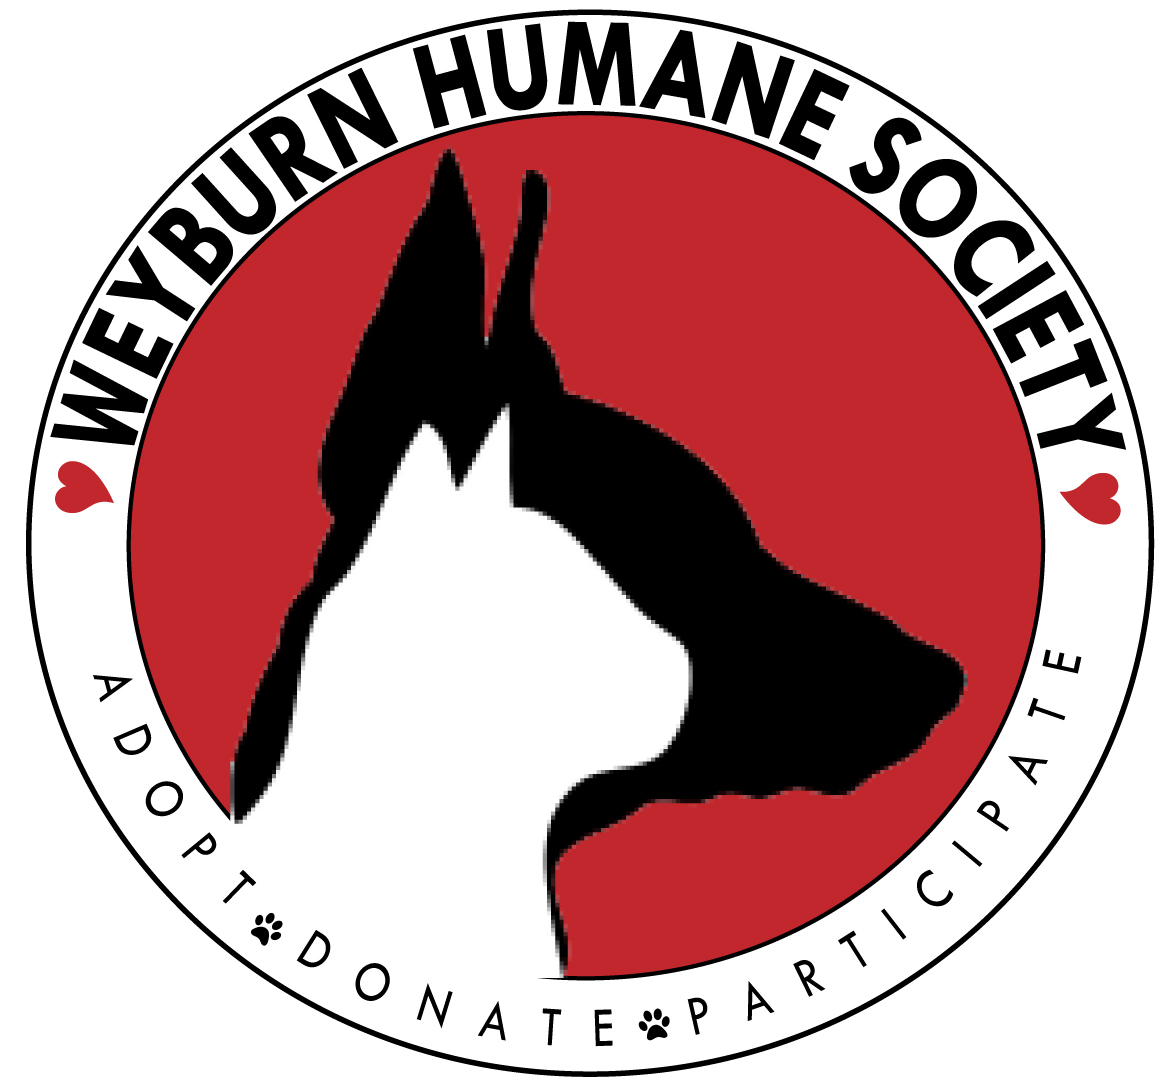 Weyburn-Humane-Society Insightrix-Research Insightrix